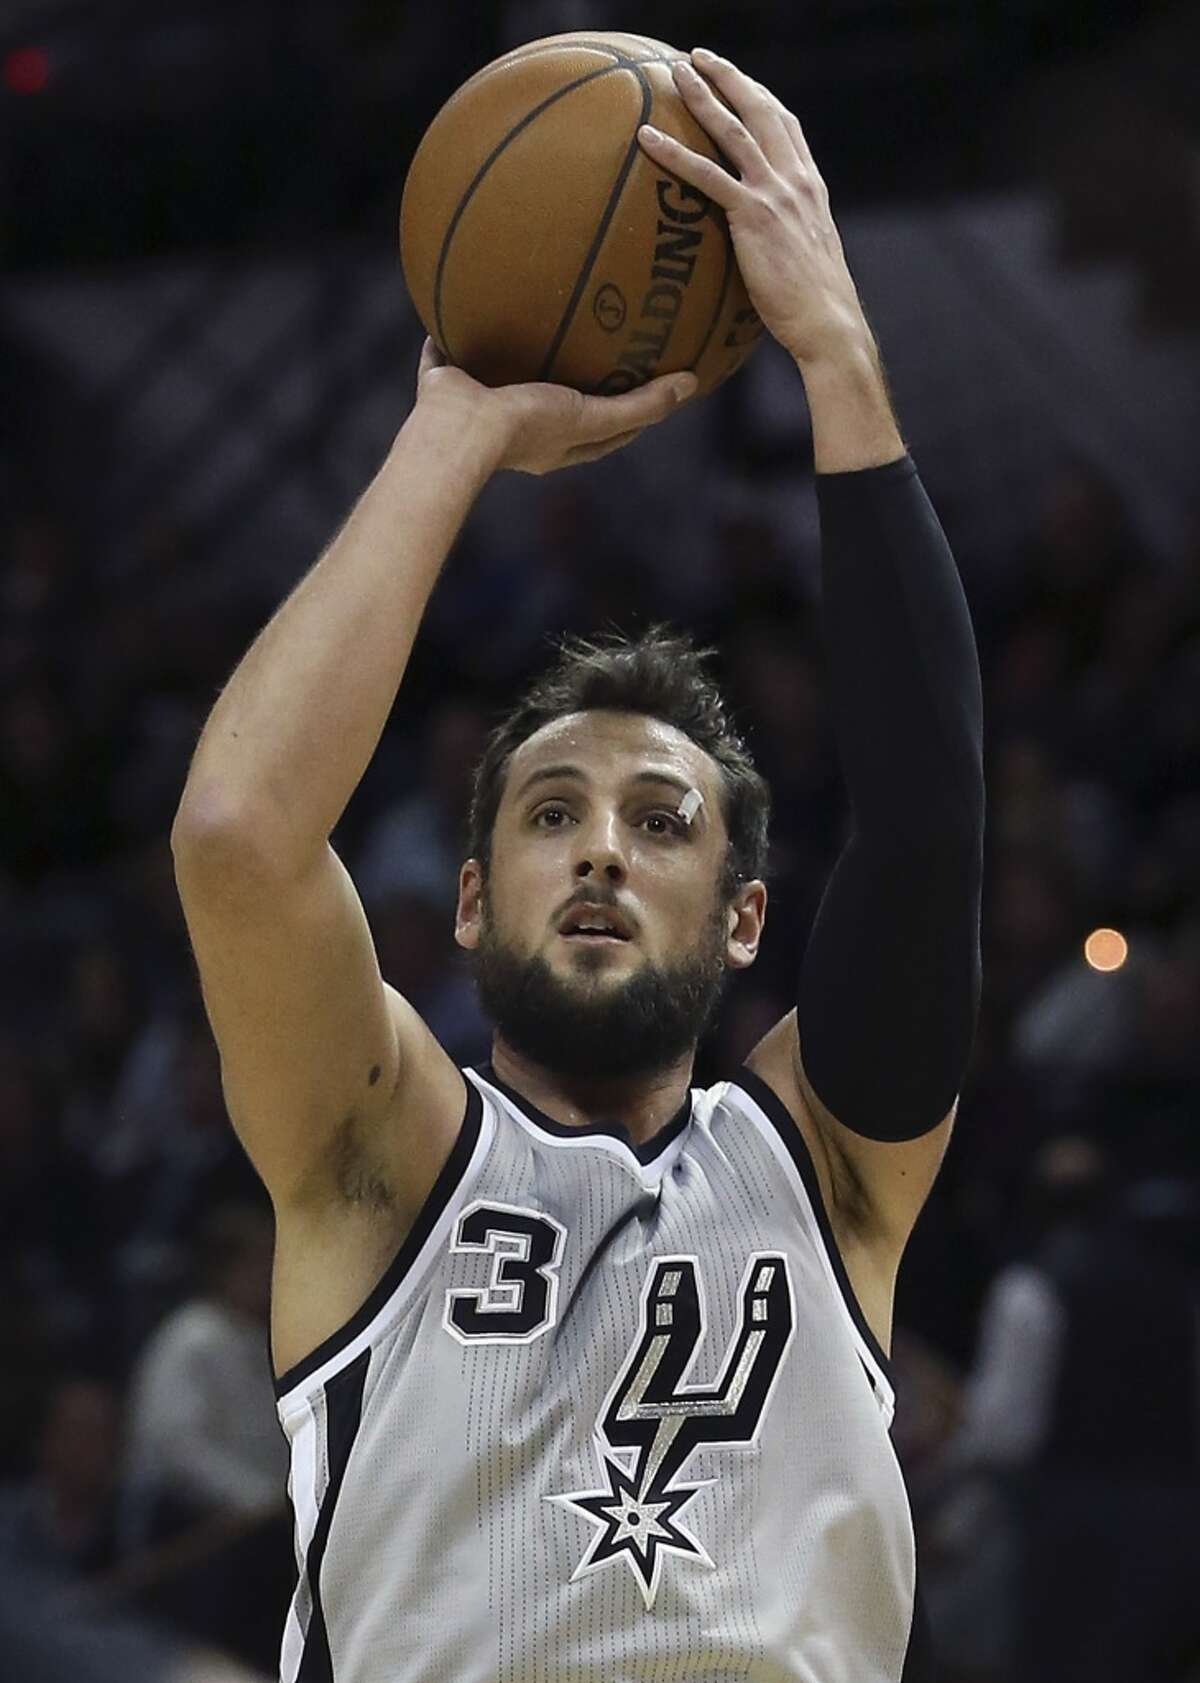 Marco Belinelli shoots a three as the Spurs play the Phoenix Suns at the At&T Center on January 9, 2015.